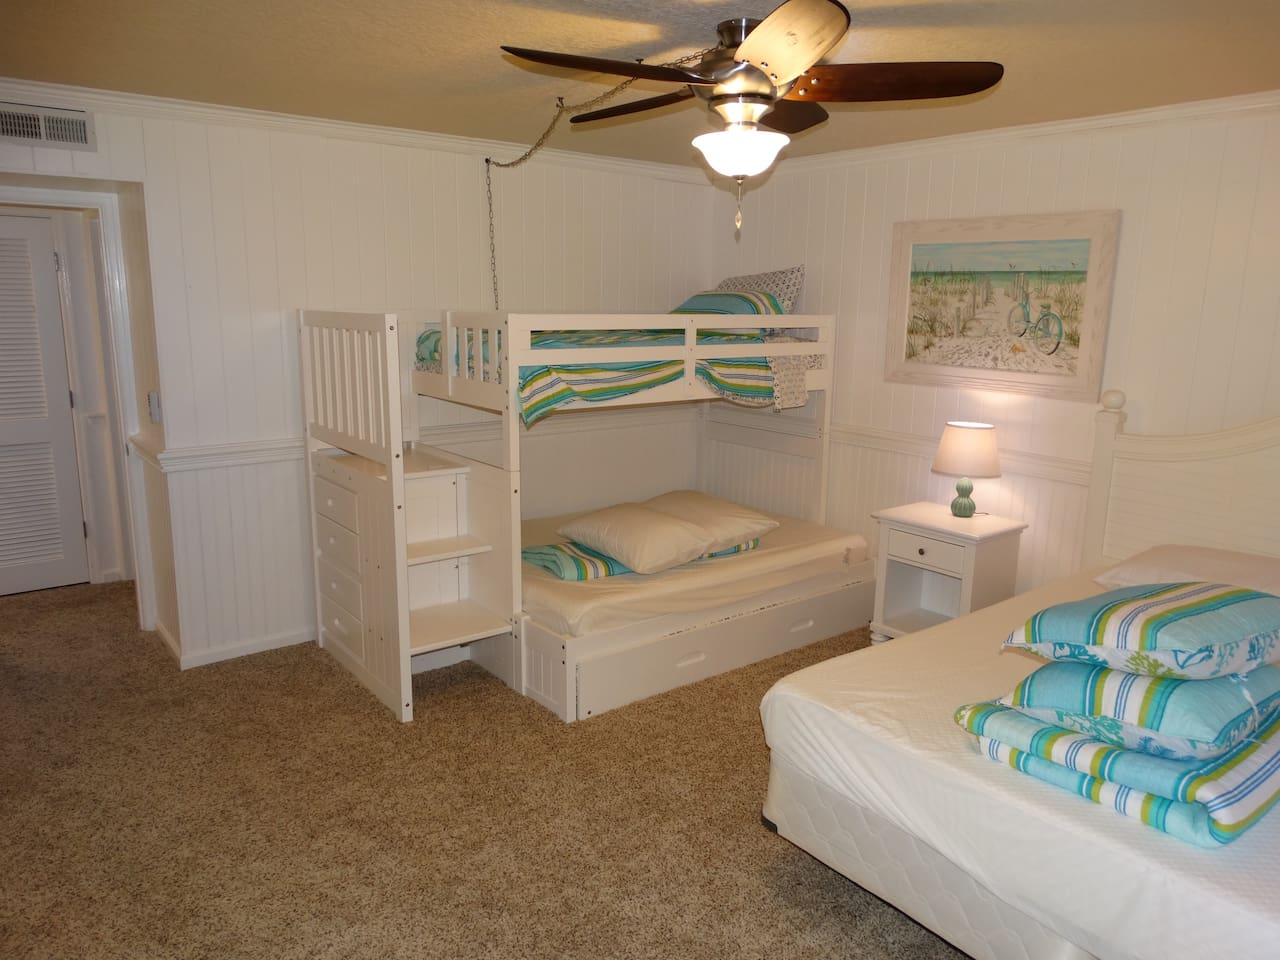 The Kids will LOVE the Bunks in Bedroom #2!